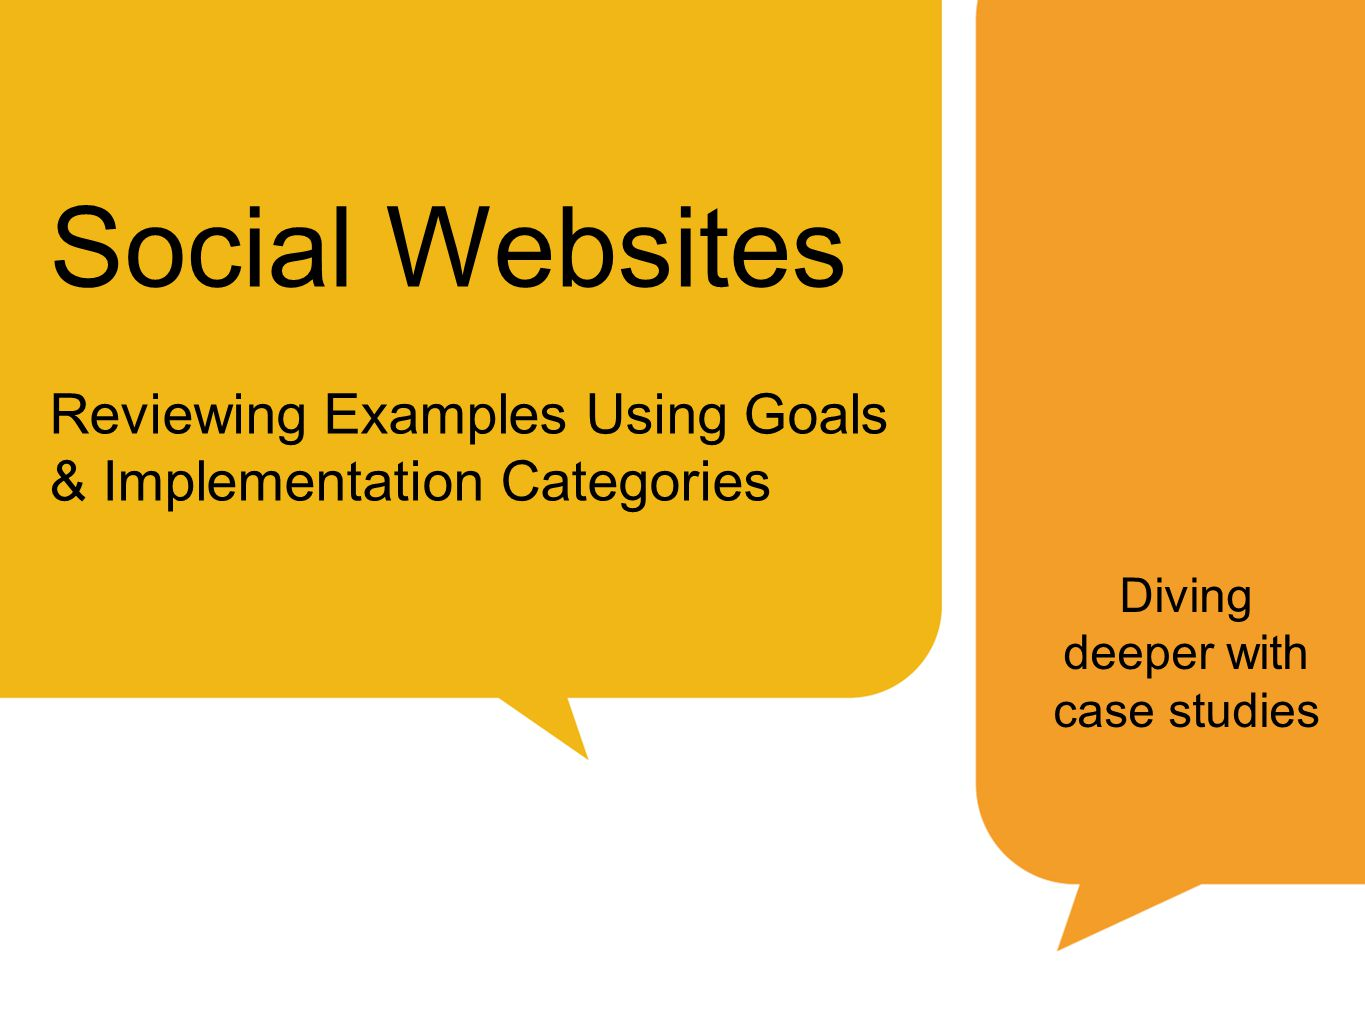 Social Websites Reviewing Examples Using Goals & Implementation Categories Diving deeper with case studies